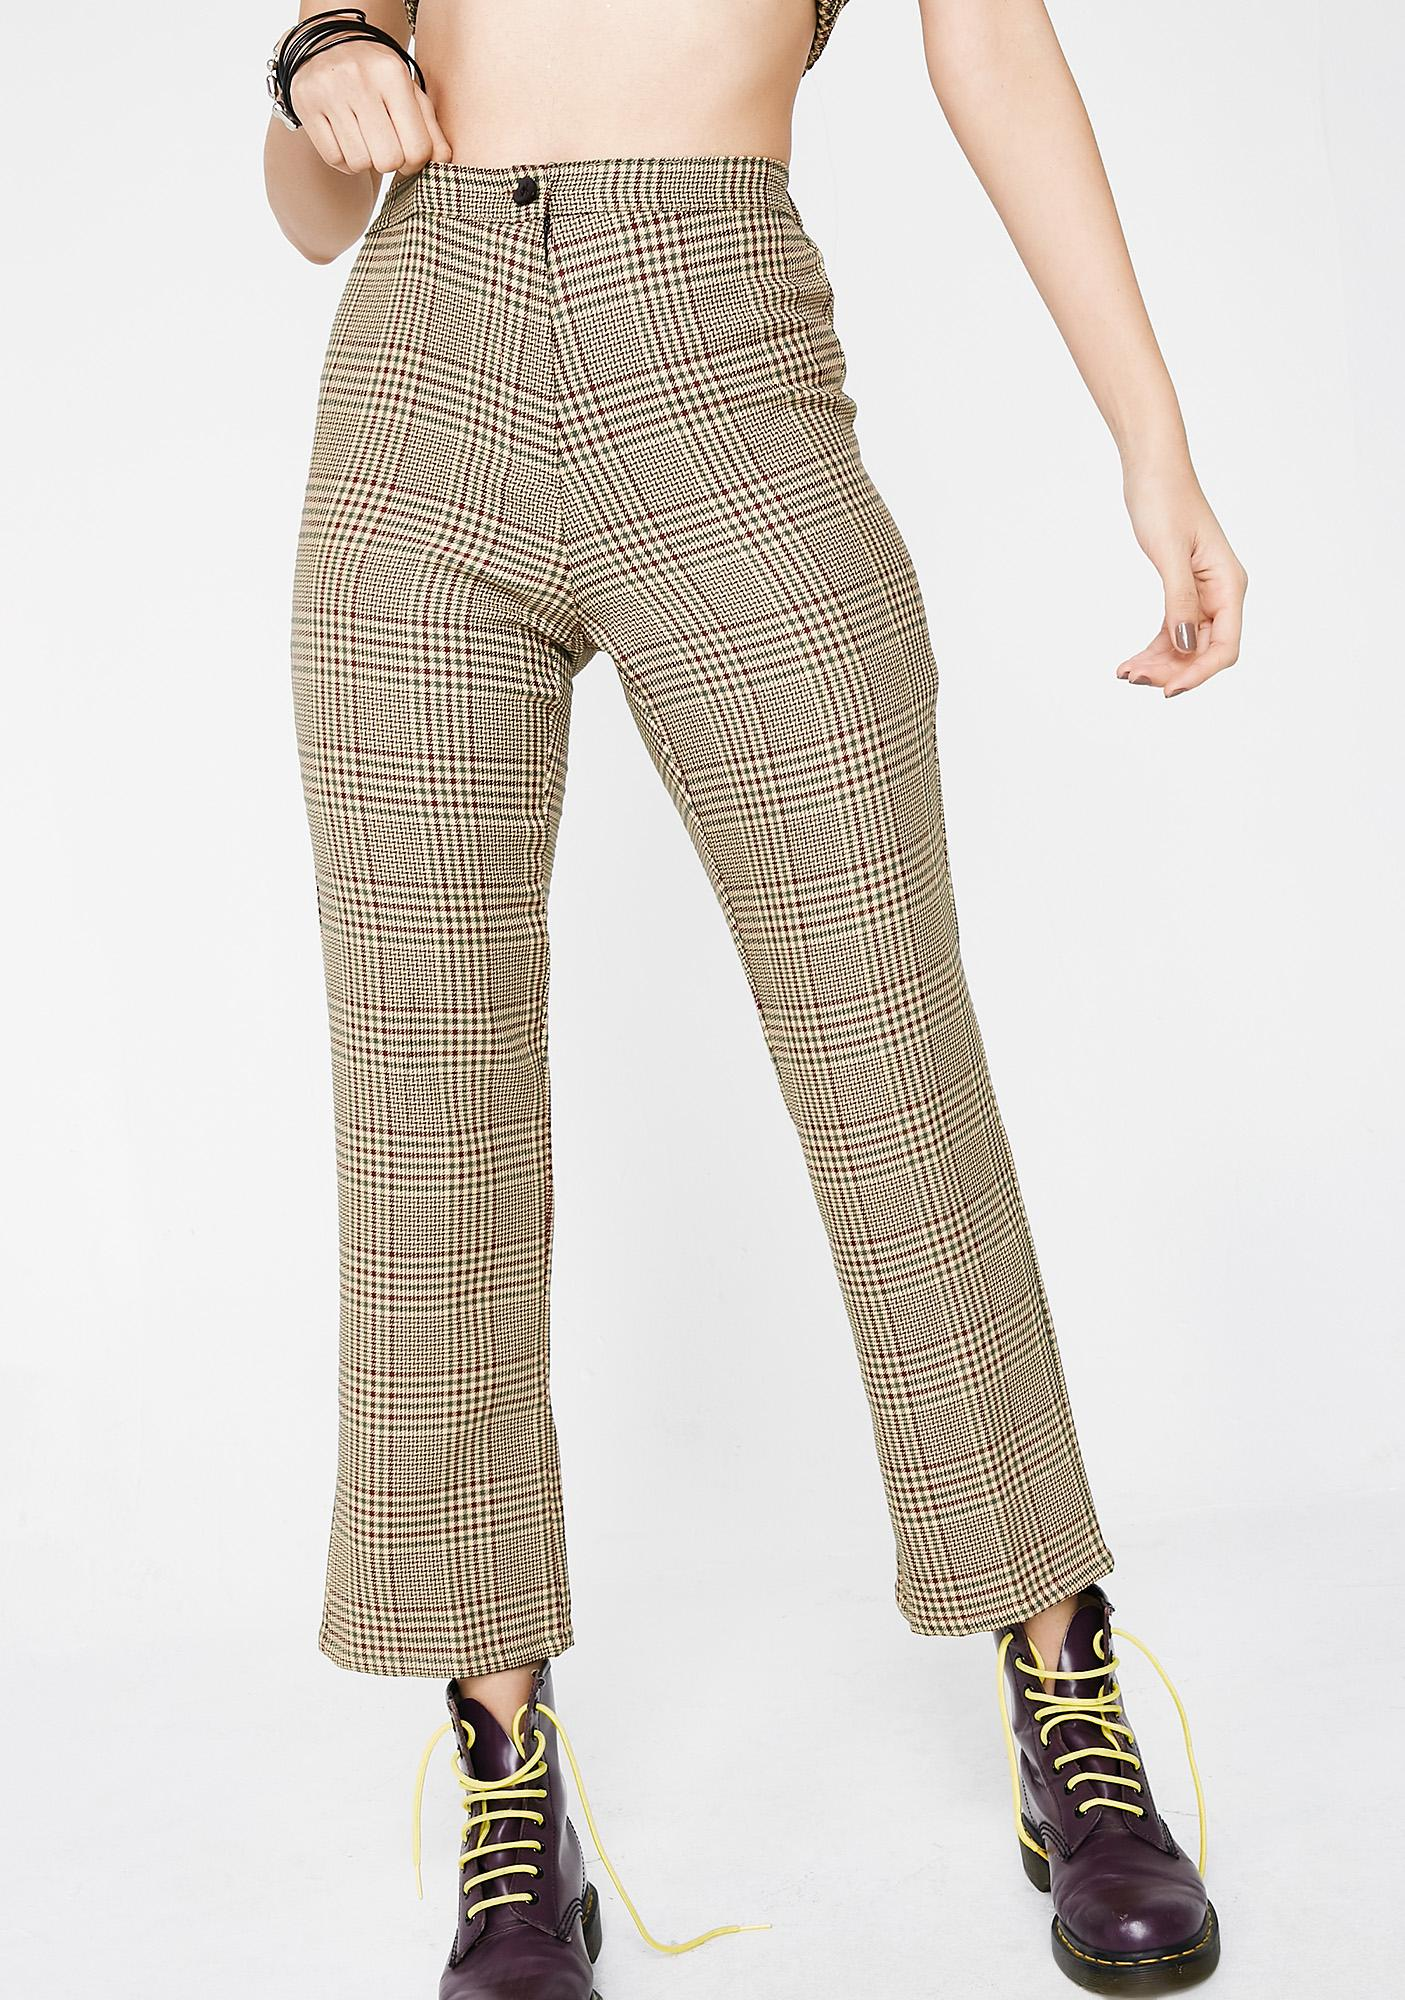 Valfré Sand Working Gal Pants